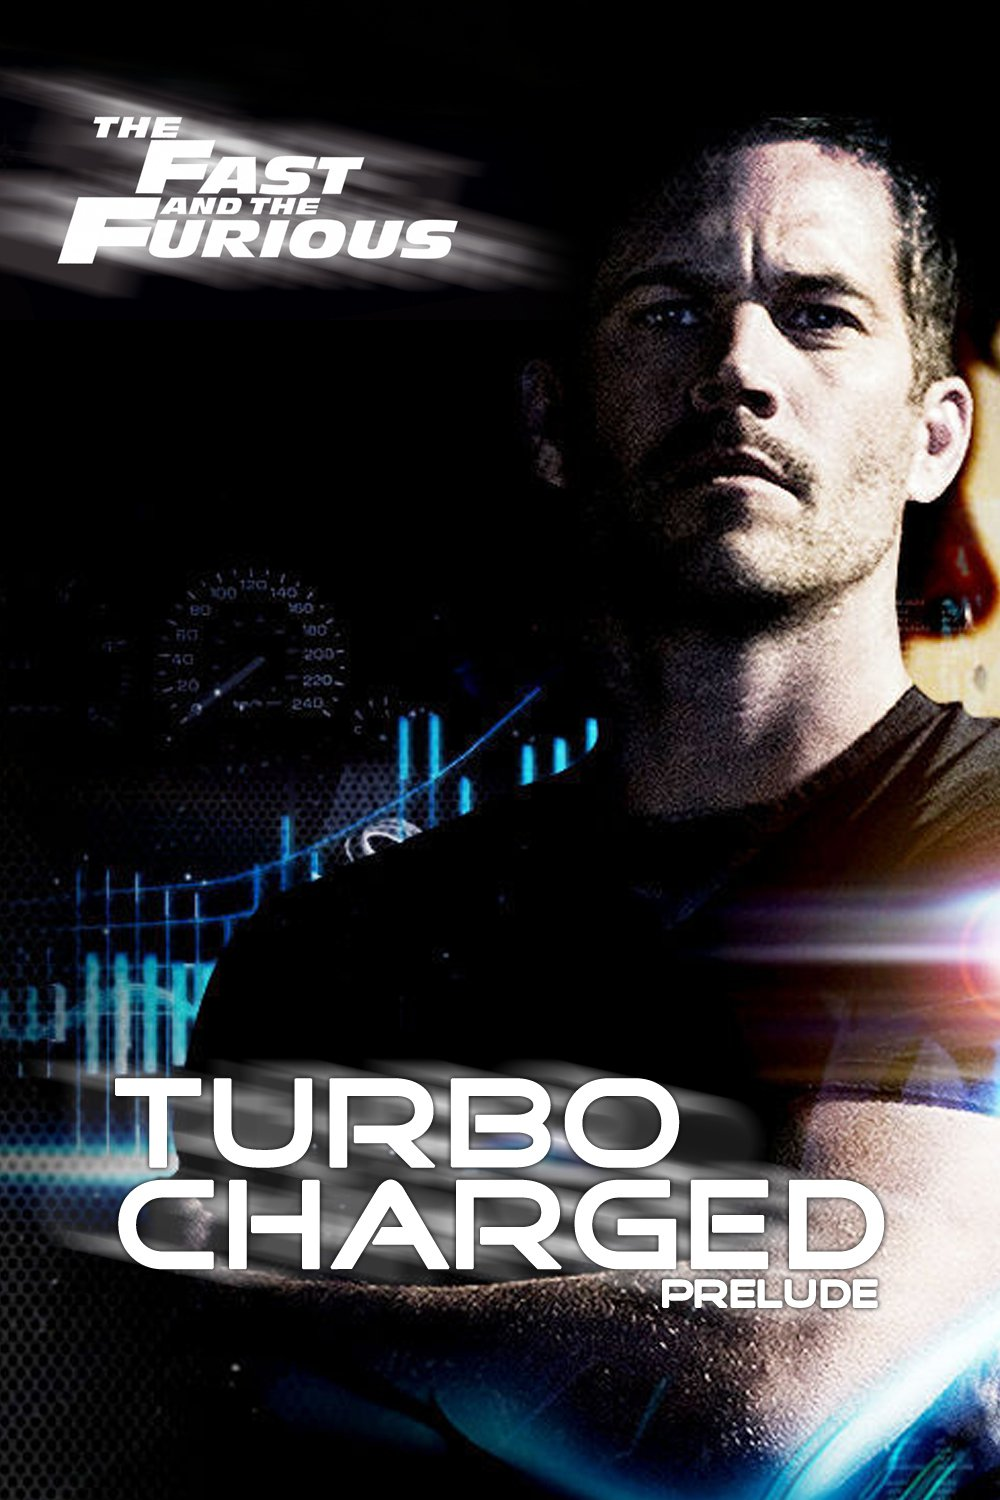 Turbo Charged Prelude To 2 Fast 2 Furious Video 2003 Imdb